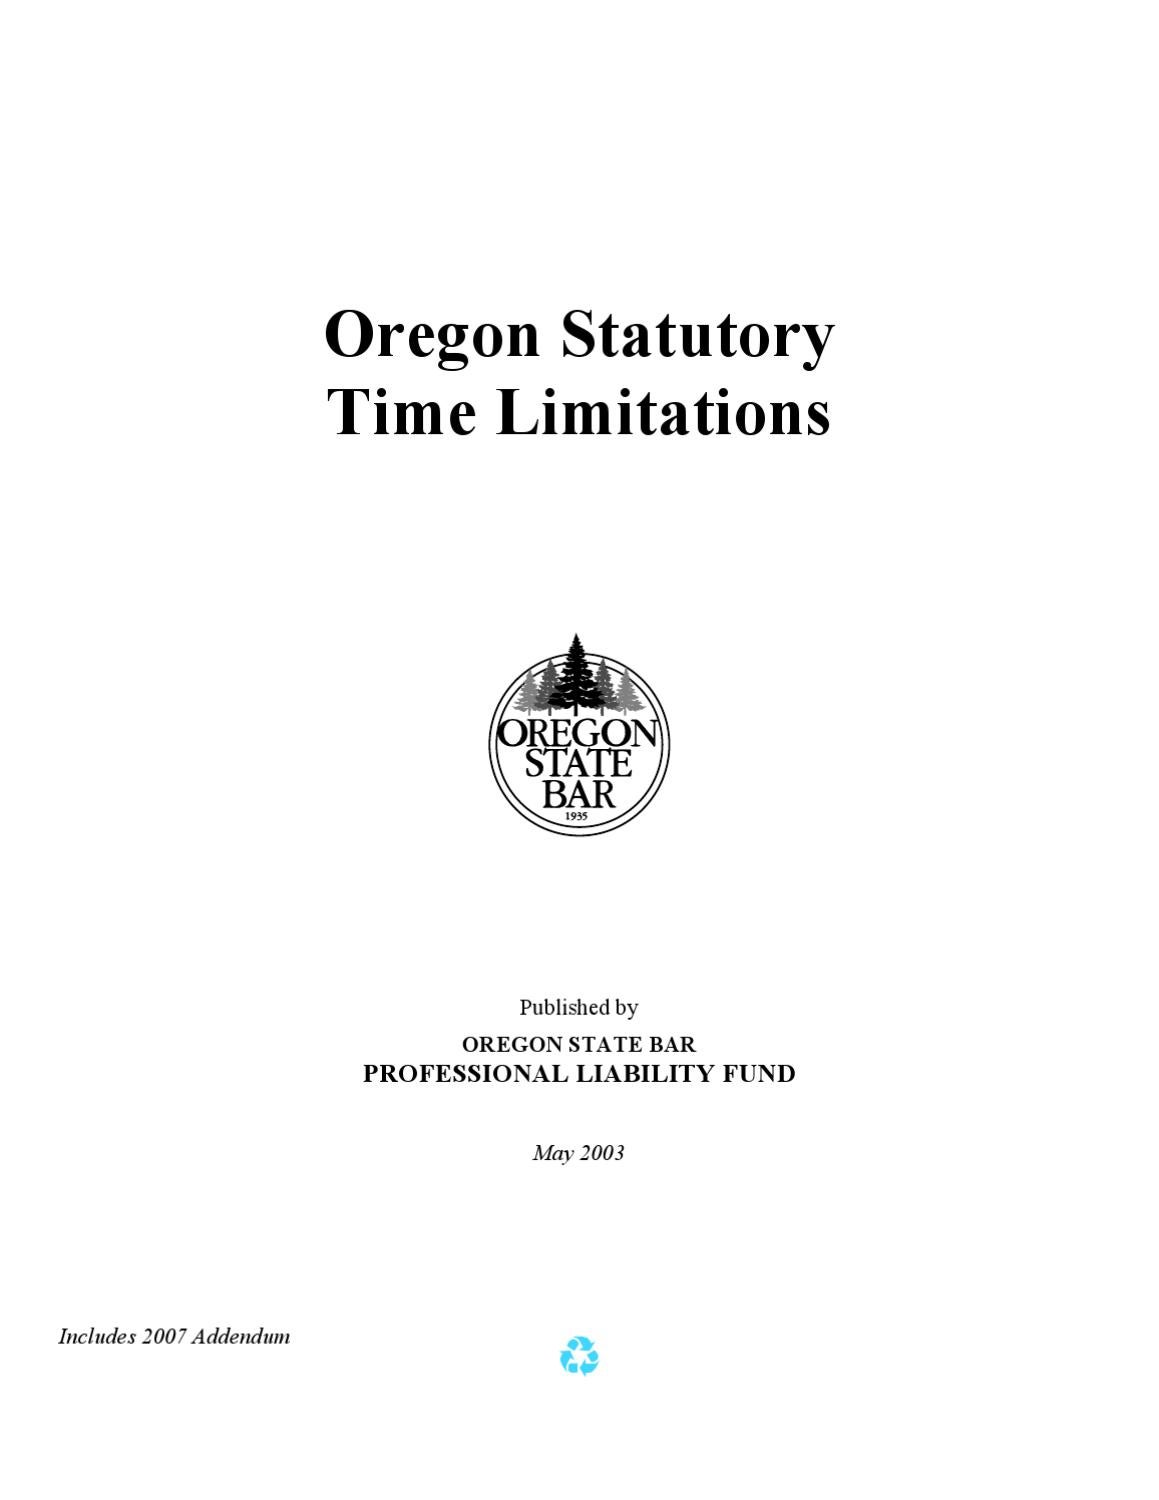 Oregon Statutory Time Limitations Handbook: The Red Book by Jerry ...